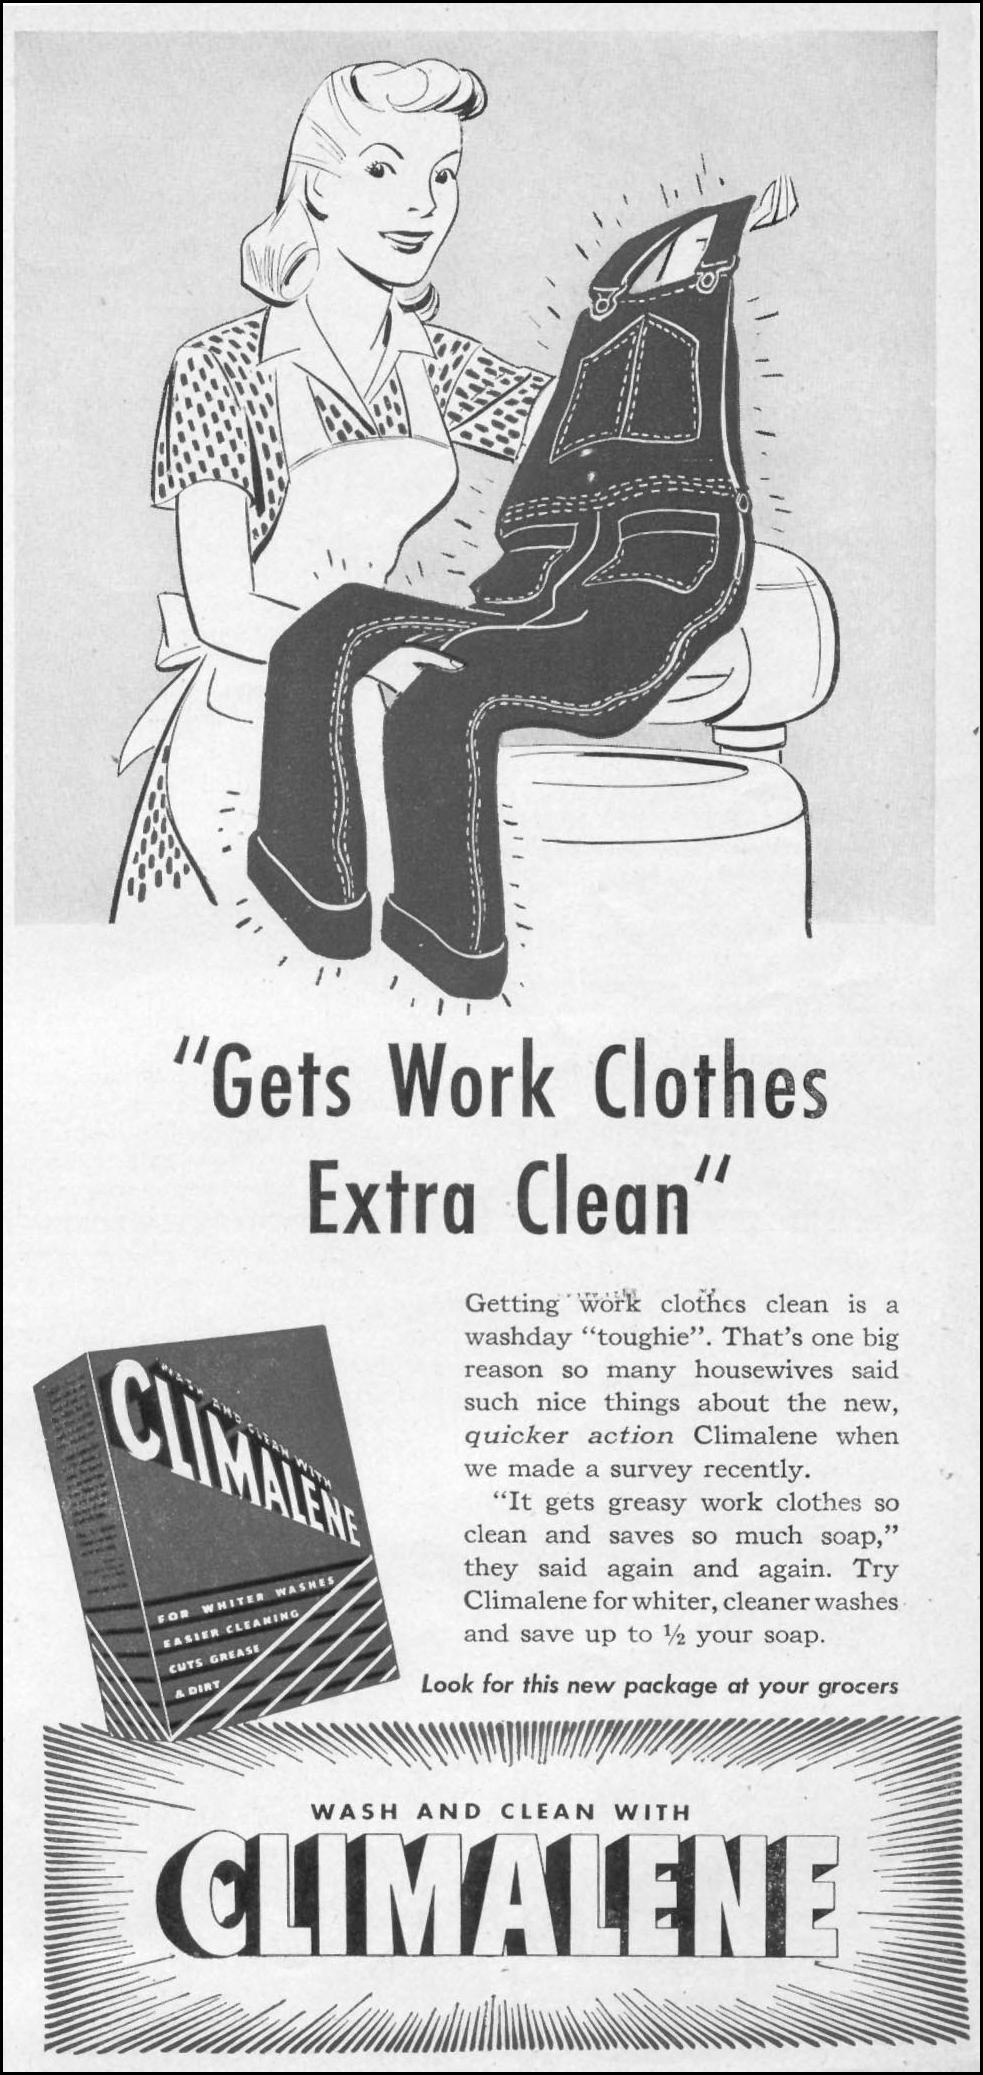 CLIMALENE DETERGENT WOMAN'S DAY 05/01/1947 p. 119